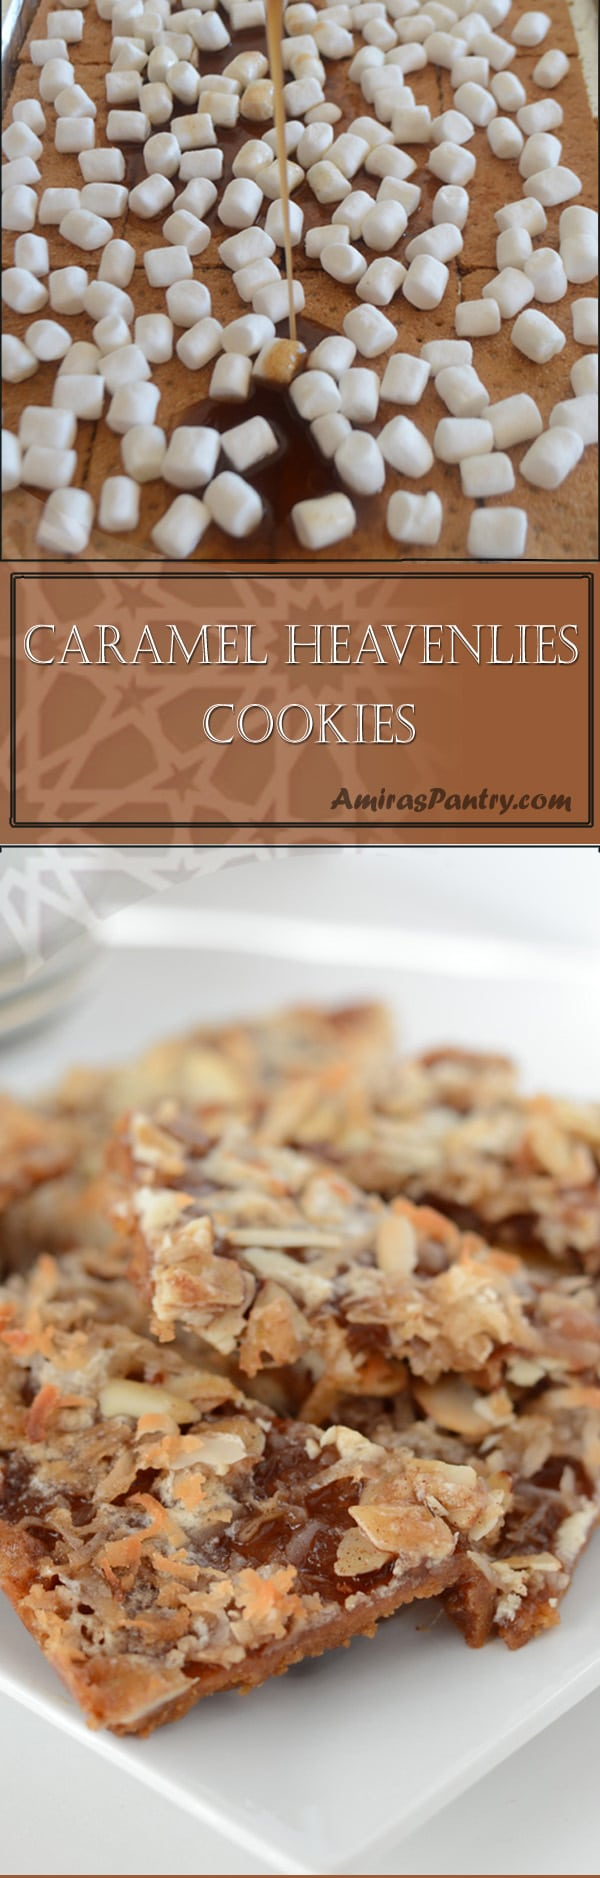 An infograph for Caramel Heavenlies Cookies recipe